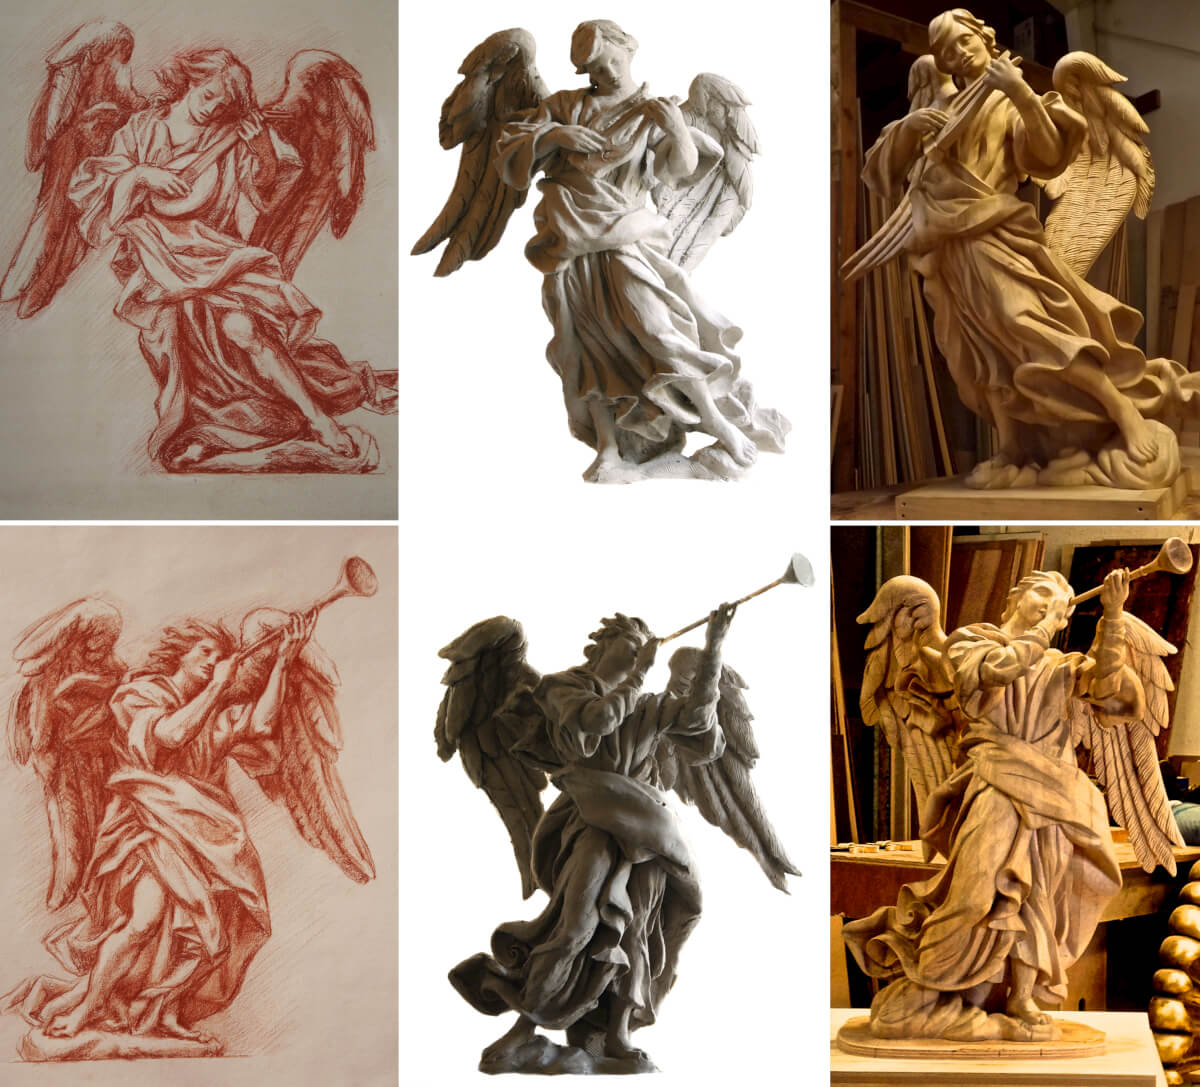 Sketches, models, and woodcarvings of angels